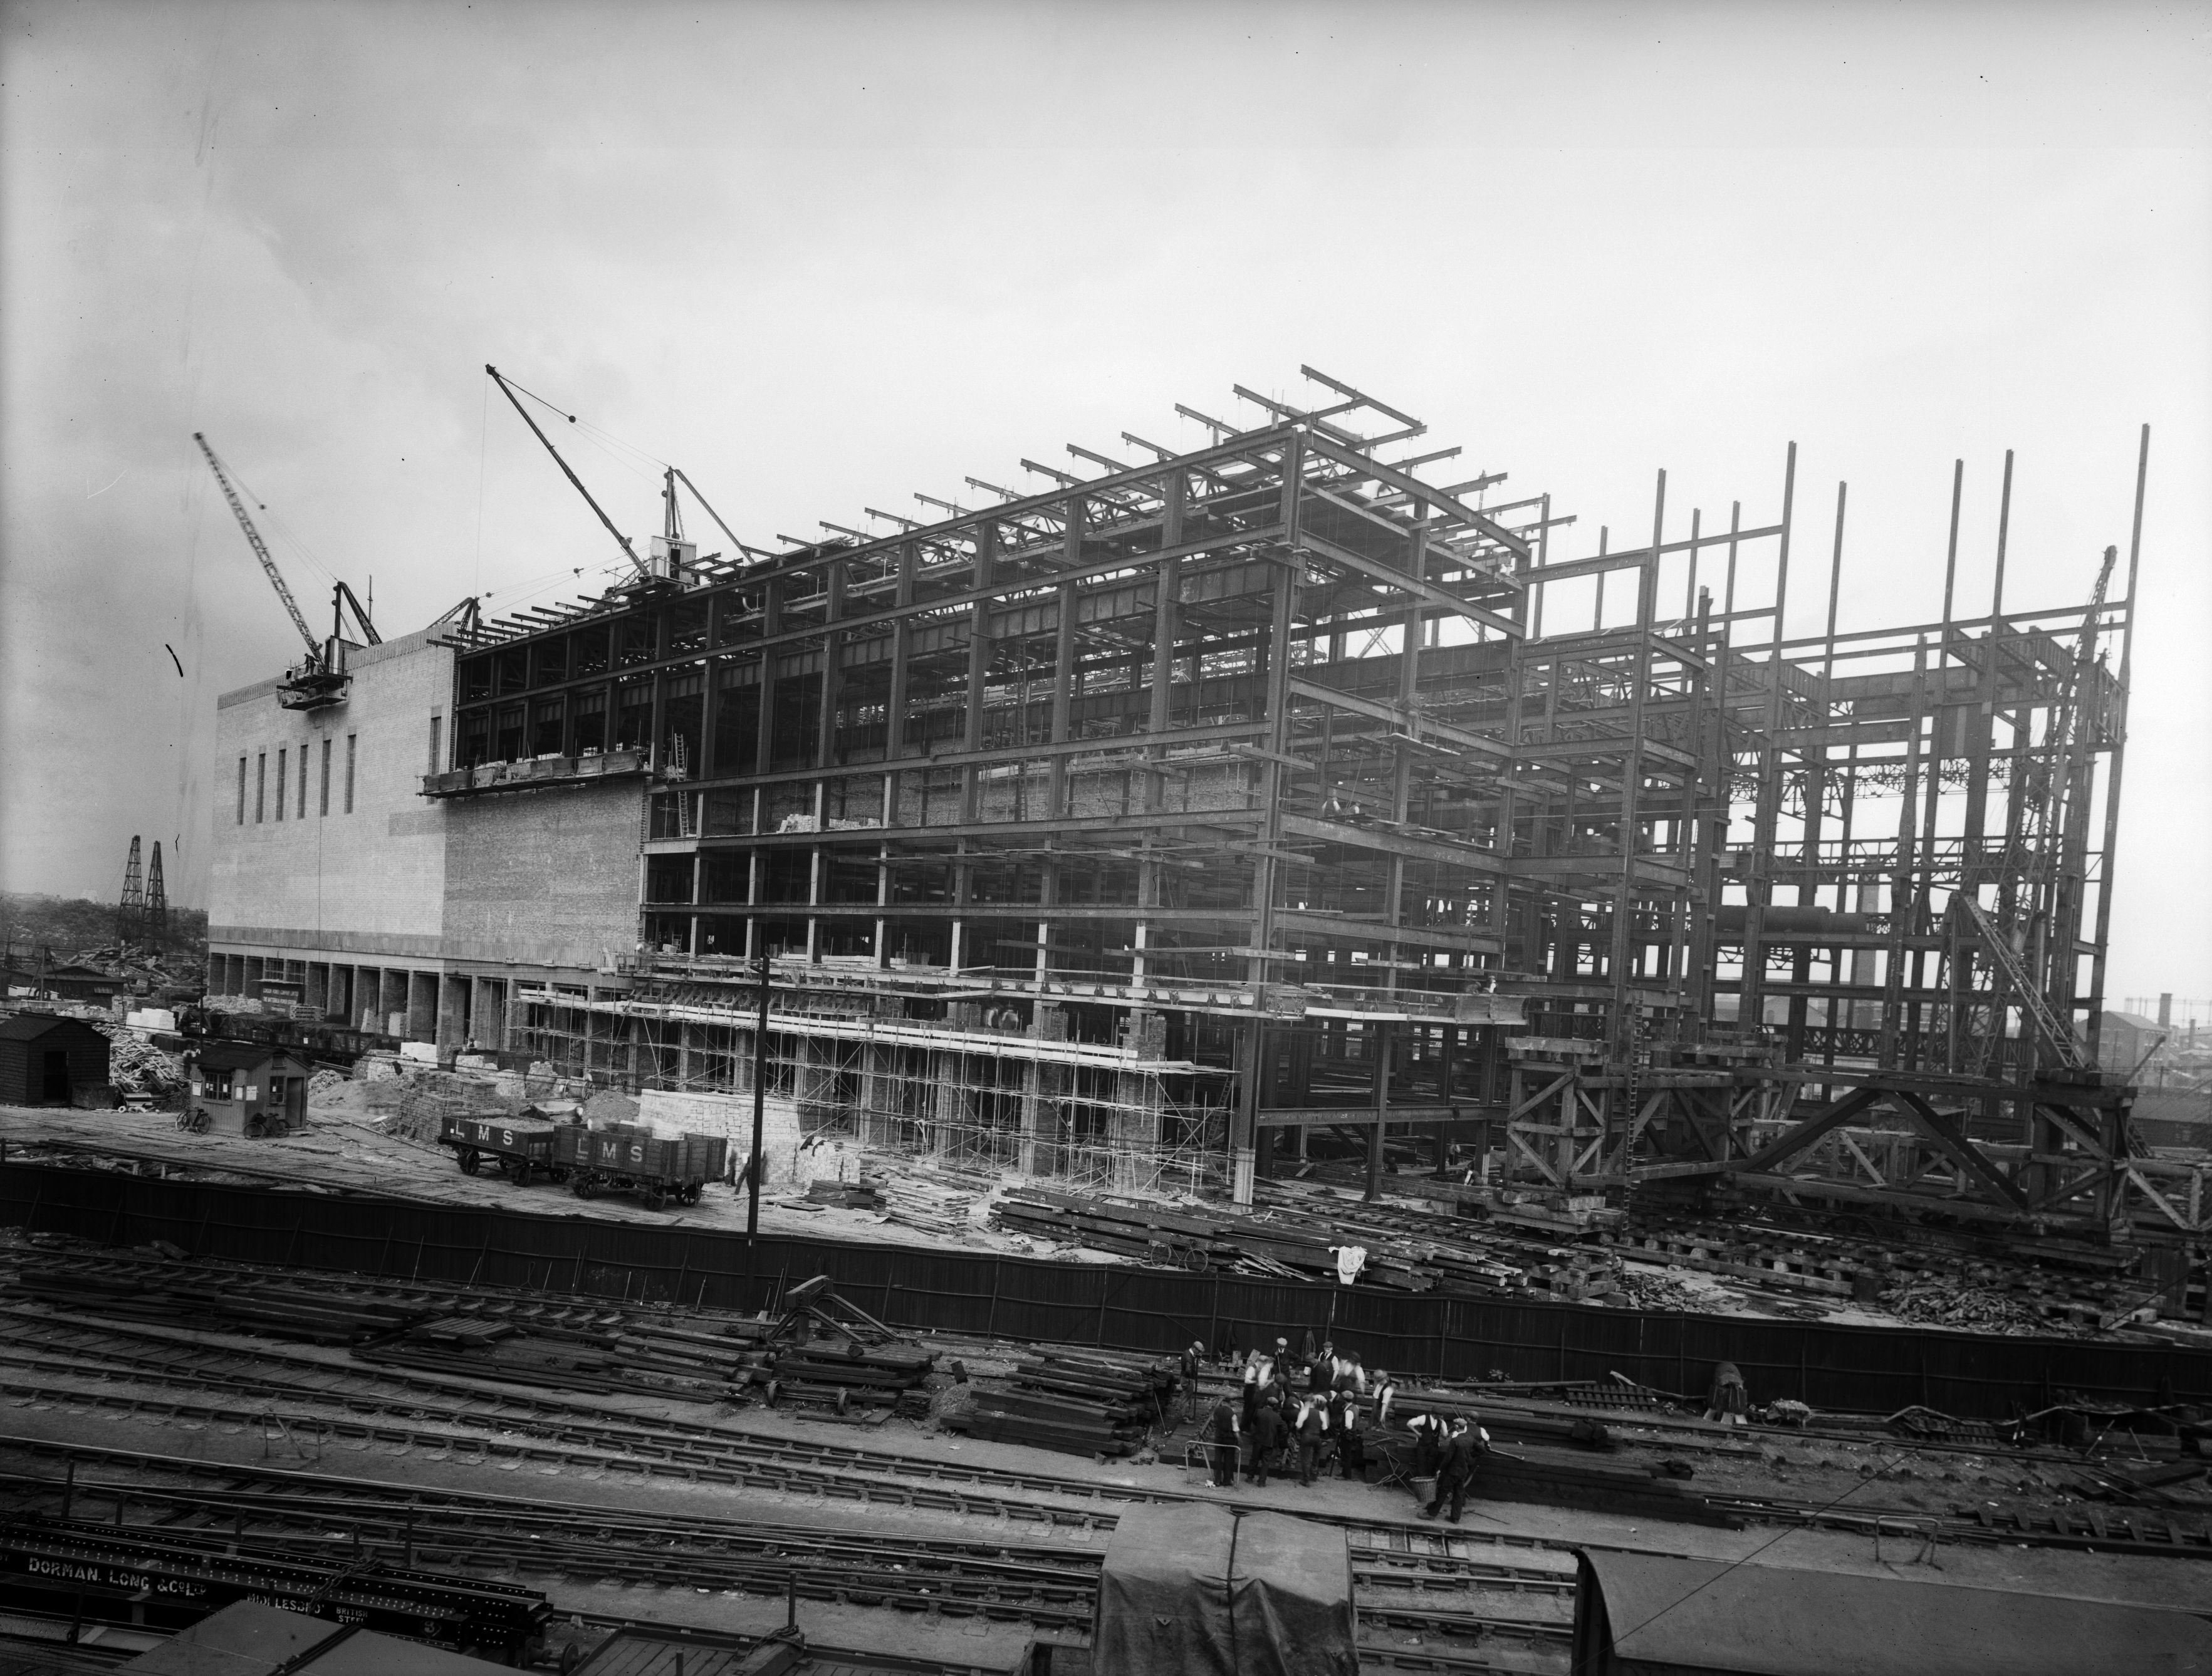 circa 1934: Battersea Power Station under construction in London. The building was designed by leading architect Giles Scott in the Gothic style. (Photo by Fox Photos/Getty Images)